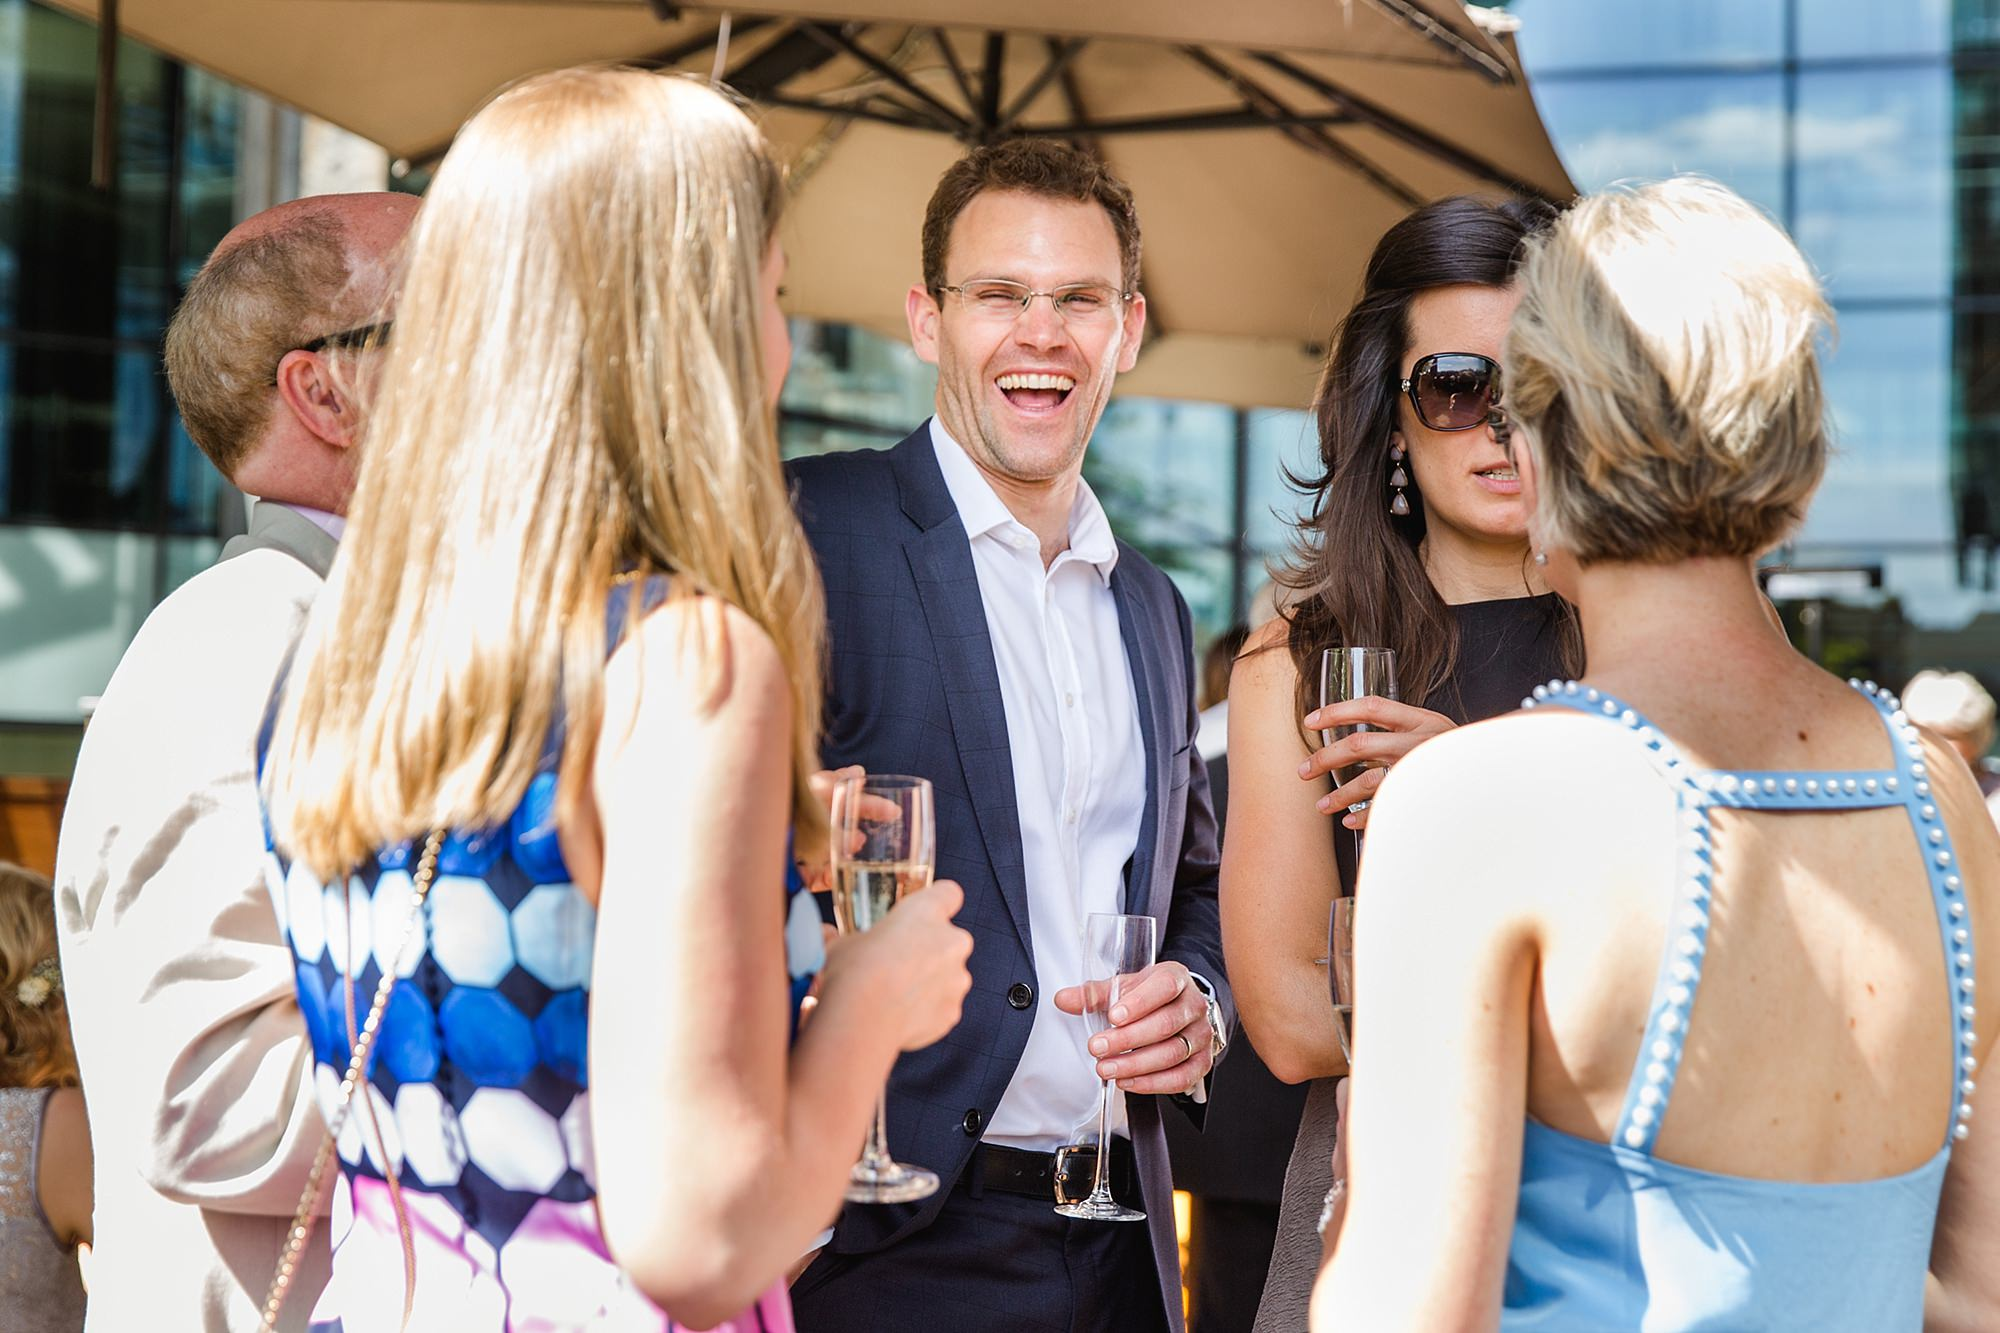 oyster shed wedding guests laughing together